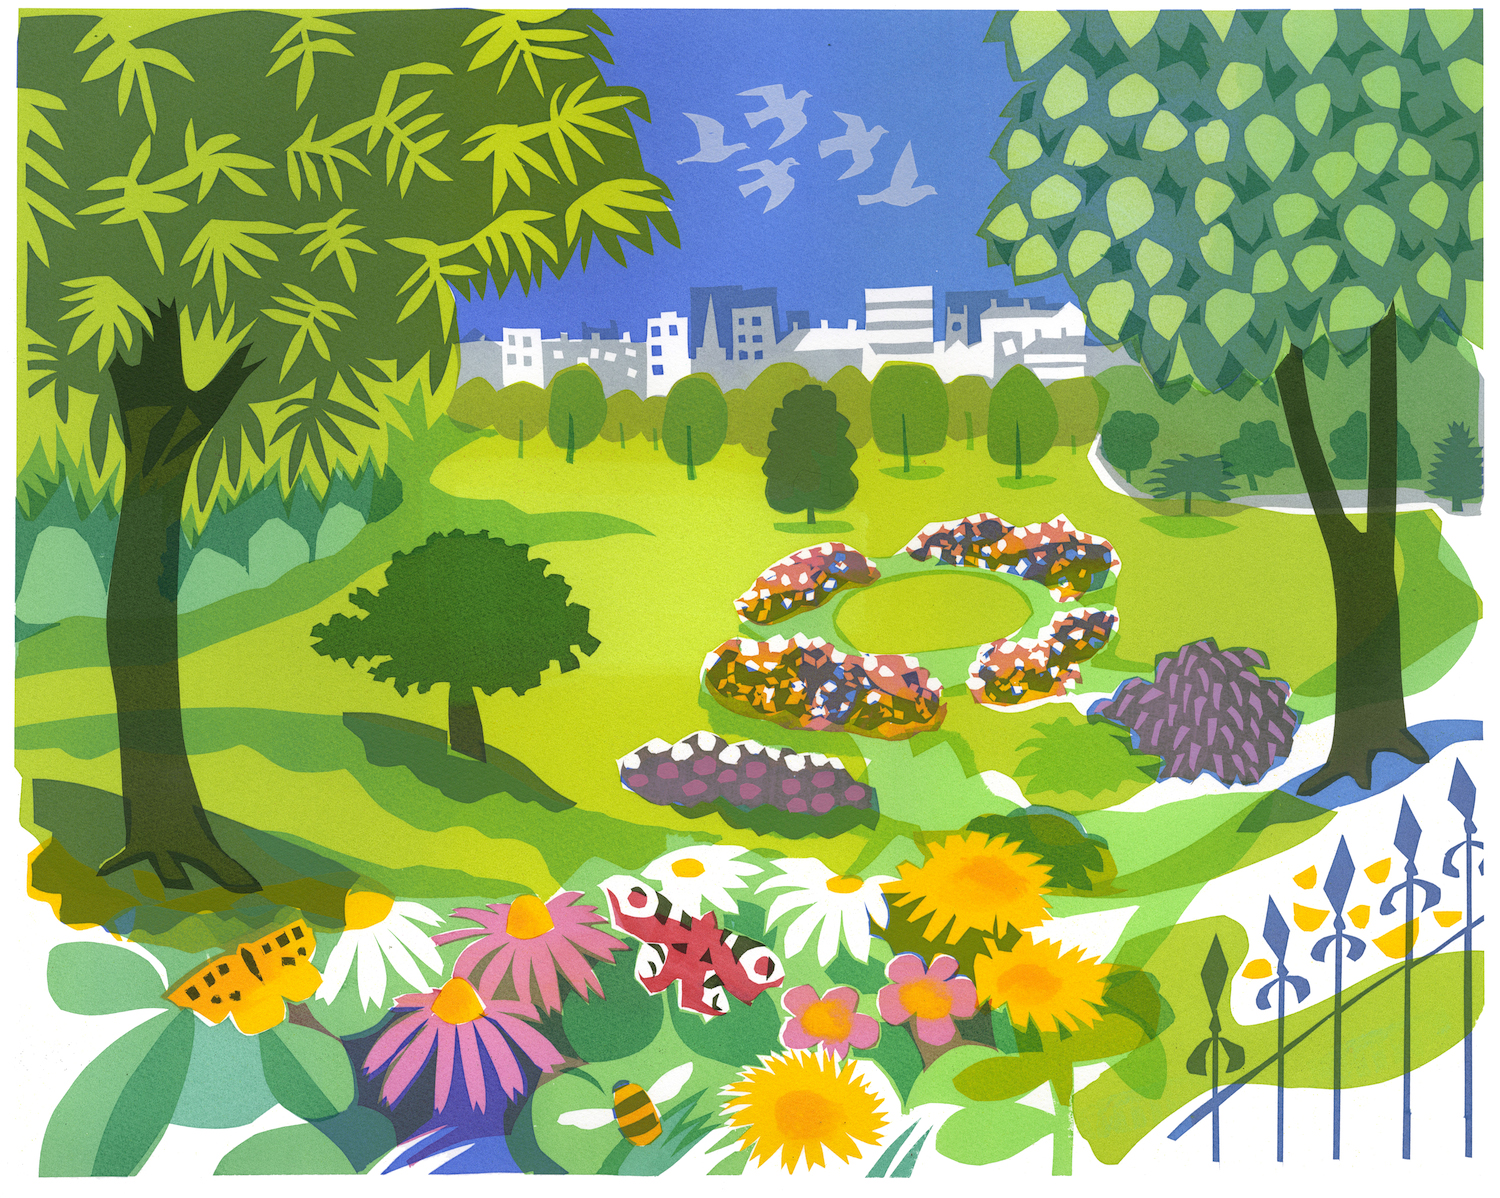 Park   serigraph   edition of 10  45 x 55 cm  £360 framed, £275 unframed